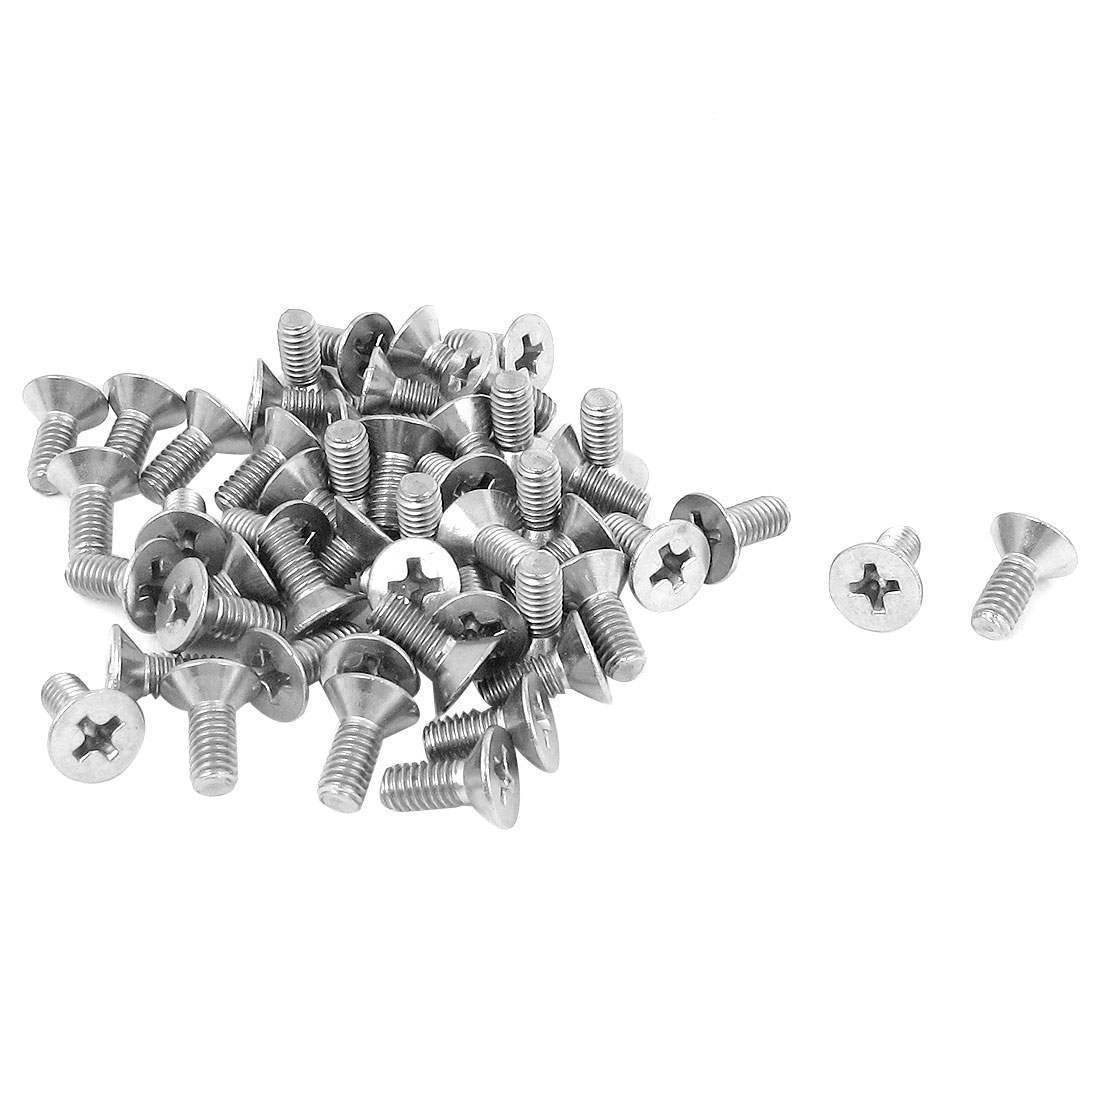 M4 x 10mm Metric Phillips Flat Head Countersunk Bolts Machine Screws 50pcs